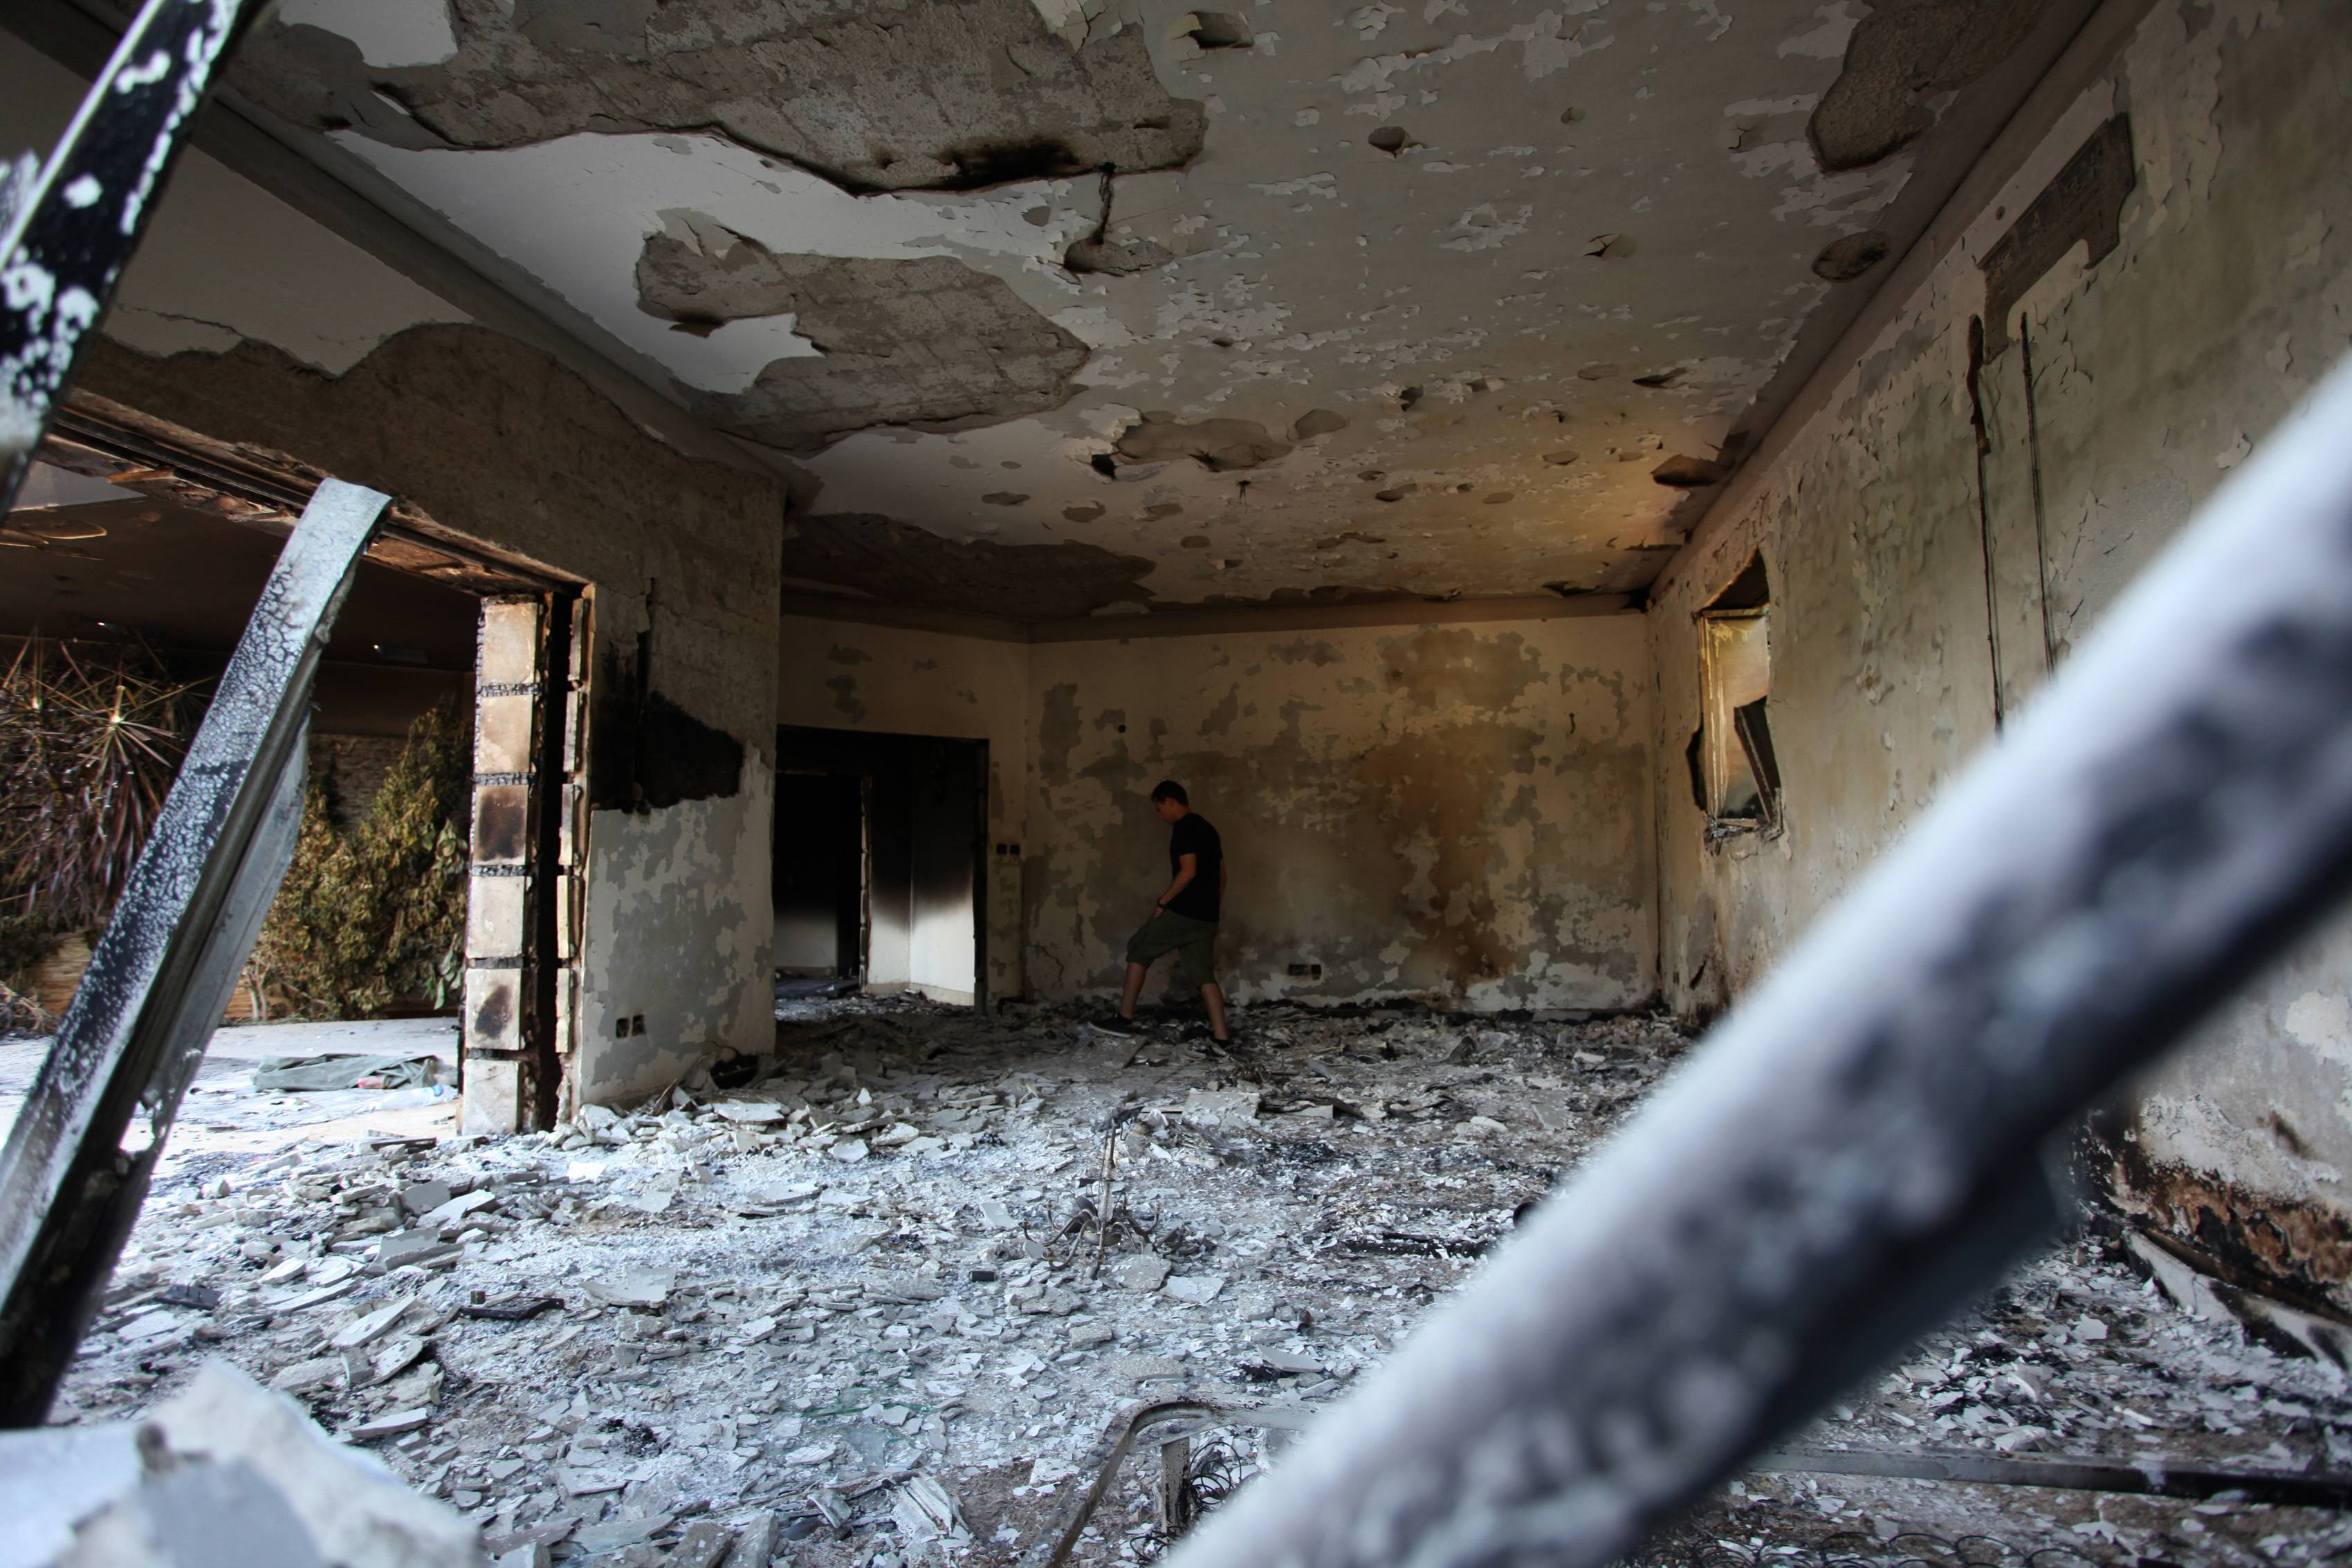 This Sept. 13, 2012, file photo shows a man walking in the rubble of the damaged U.S. consulate, after an attack that killed four Americans, including Ambassador Chris Stevens on the night of Tuesday, Sept. 11, 2012, in Benghazi, Libya.